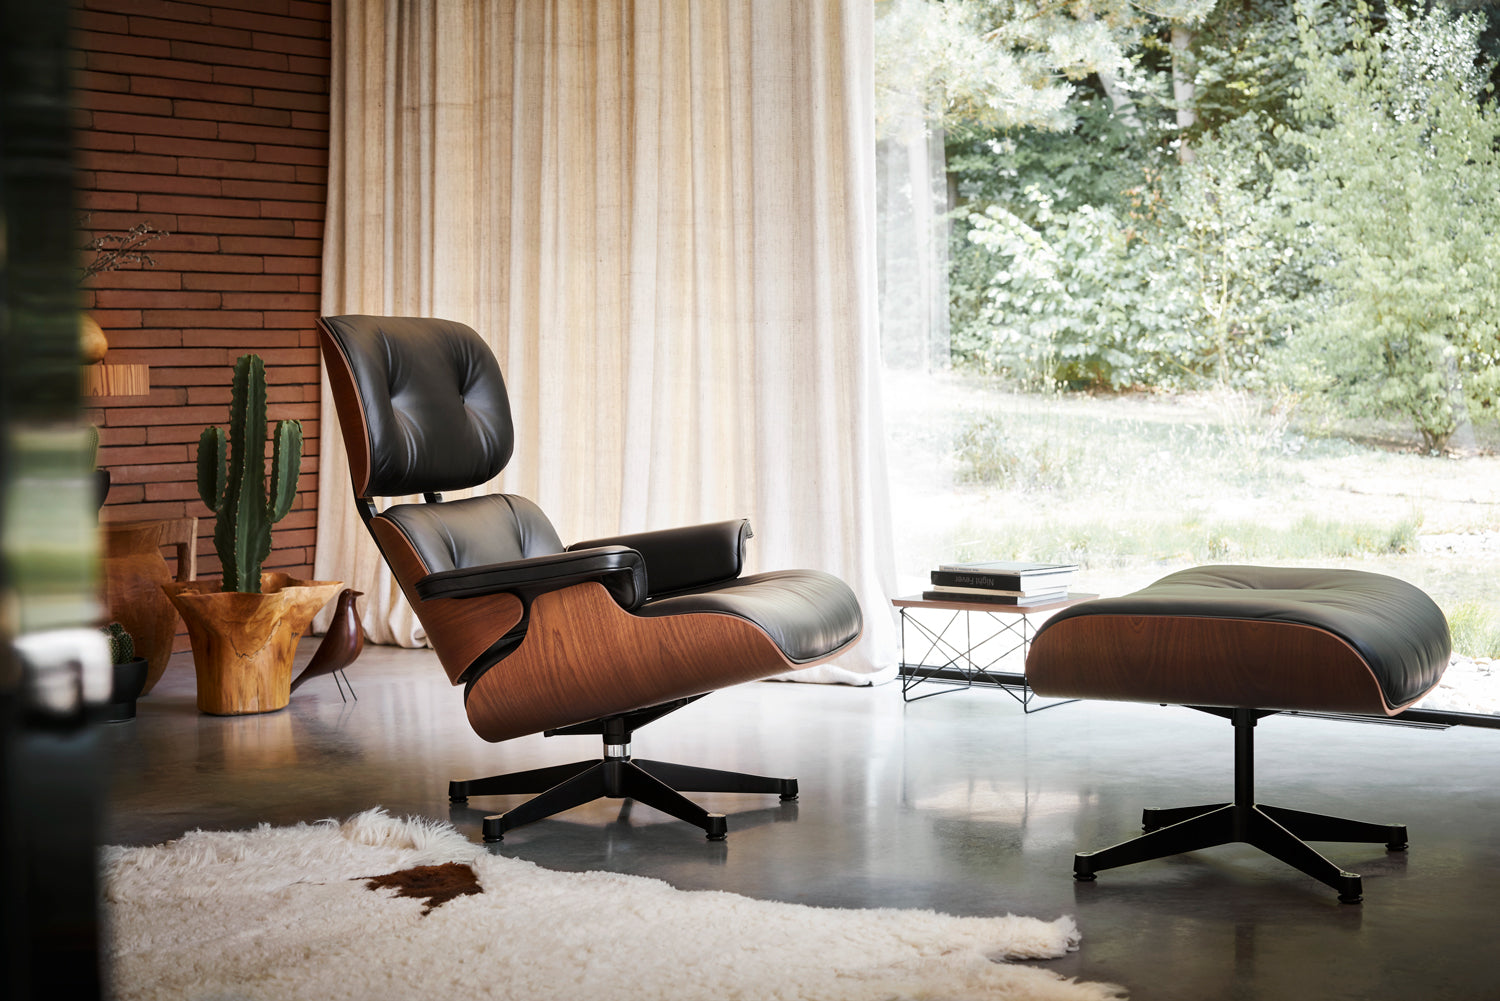 Awesome New Limited Edition Eames Lounge Chair In Mahogany Couch Short Links Chair Design For Home Short Linksinfo